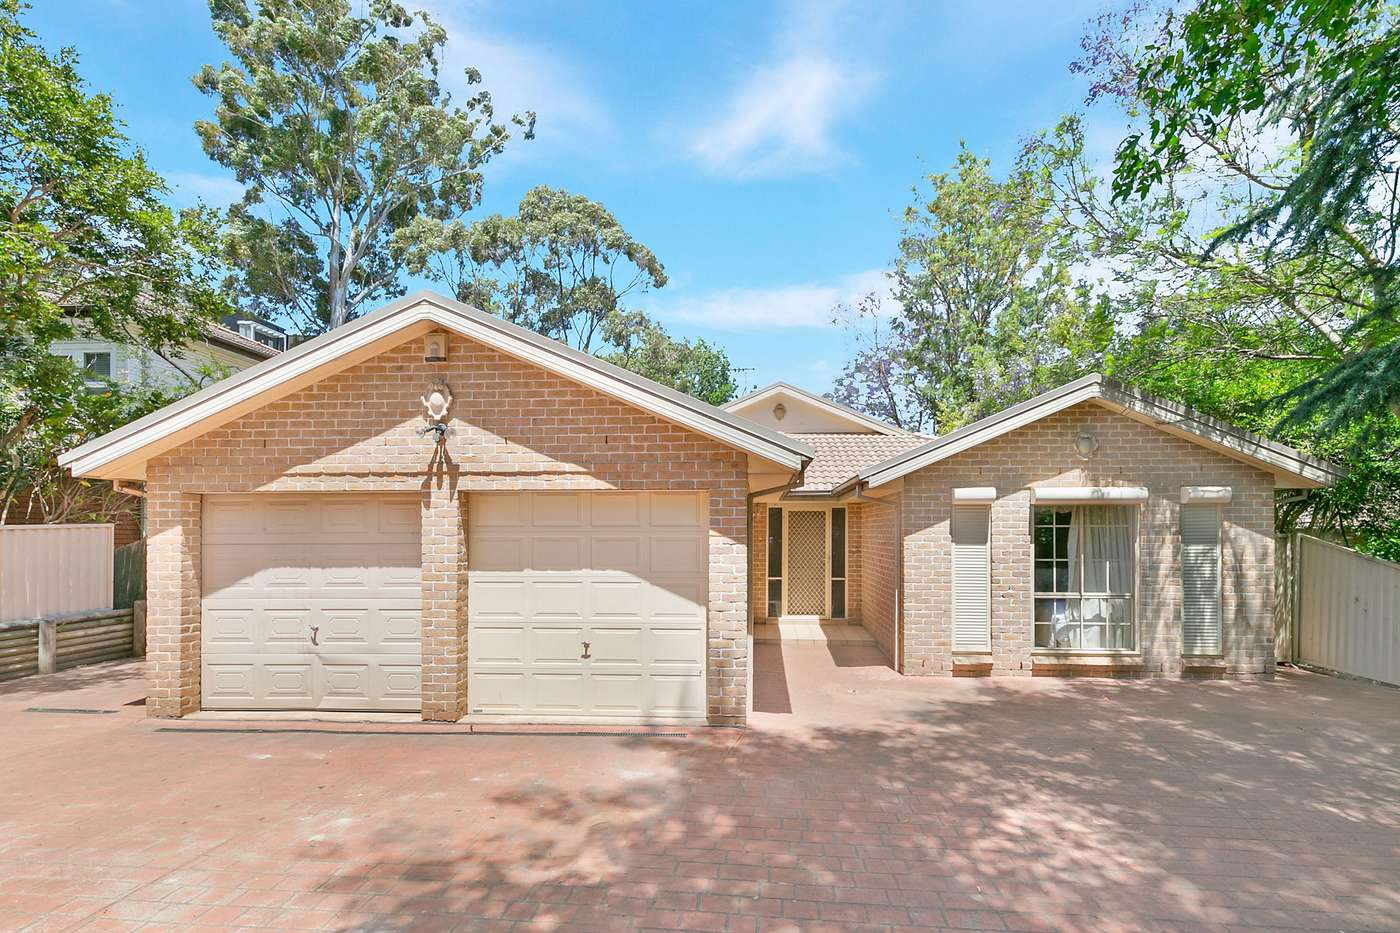 Main view of Homely house listing, 203 Carlingford Road, Carlingford, NSW 2118